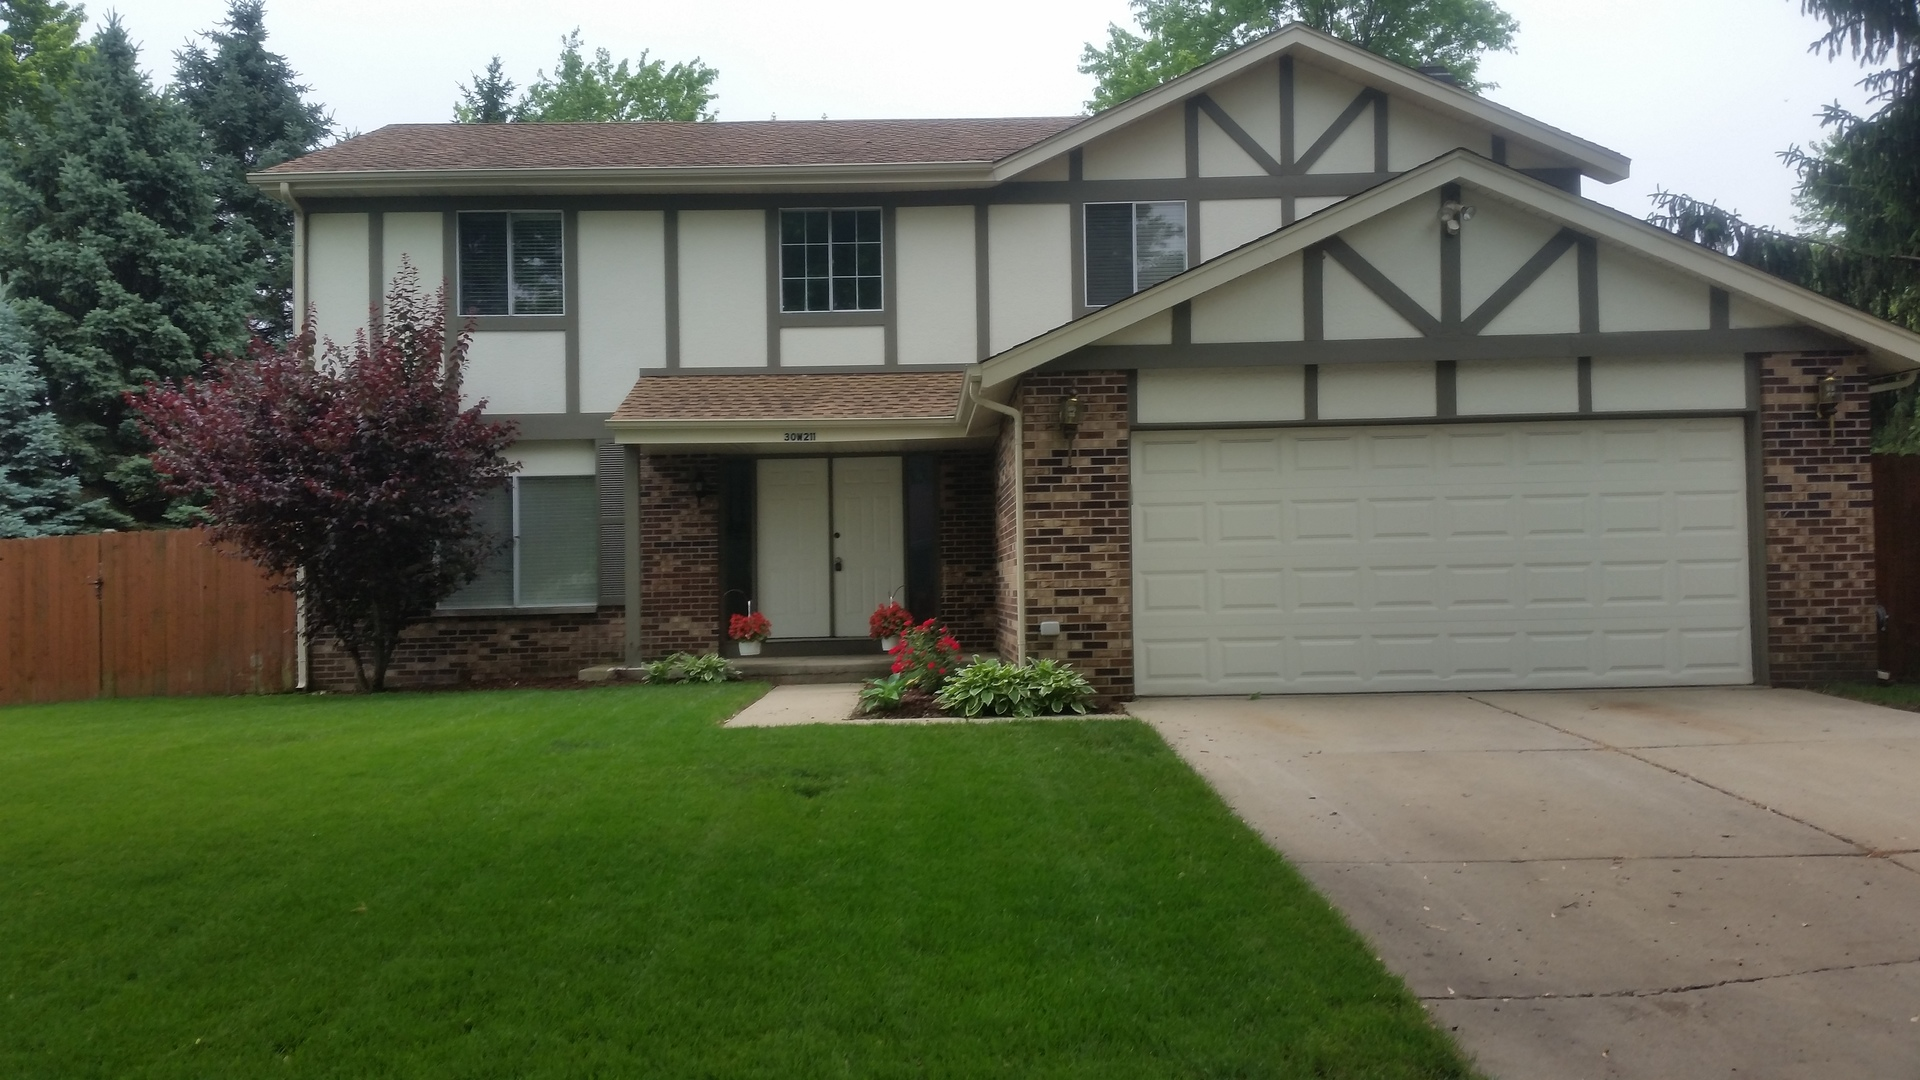 30w211 Leominster Court, Warrenville, Illinois 60555